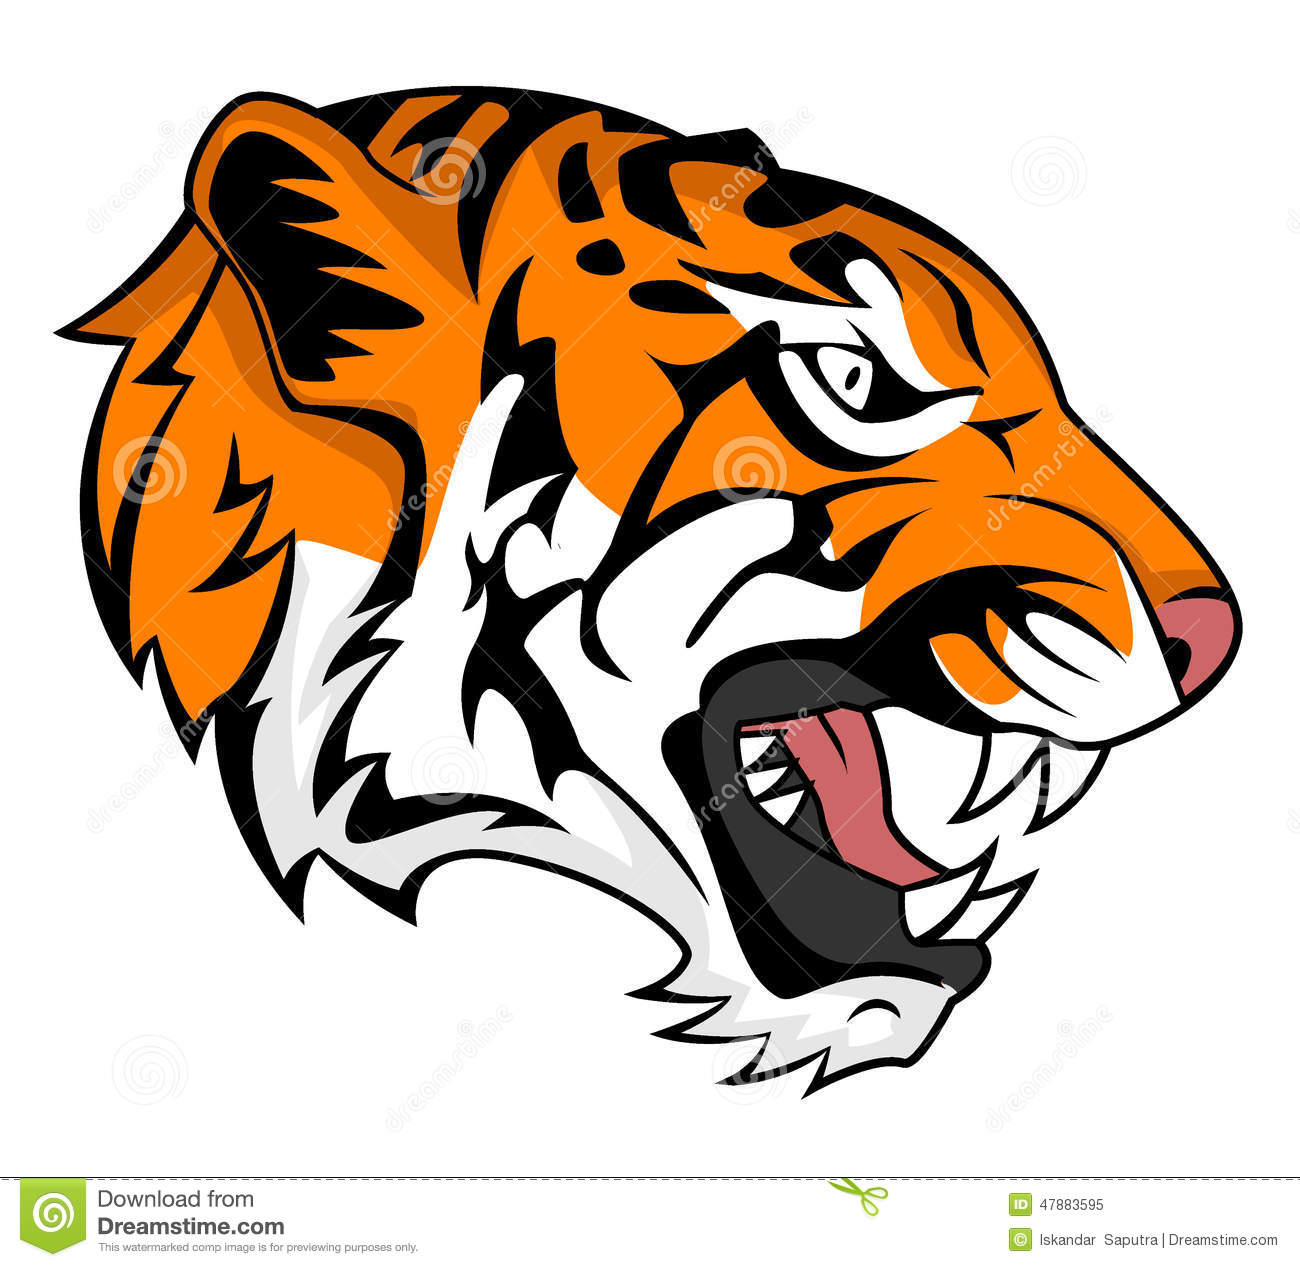 Tiger roar vector - photo#3